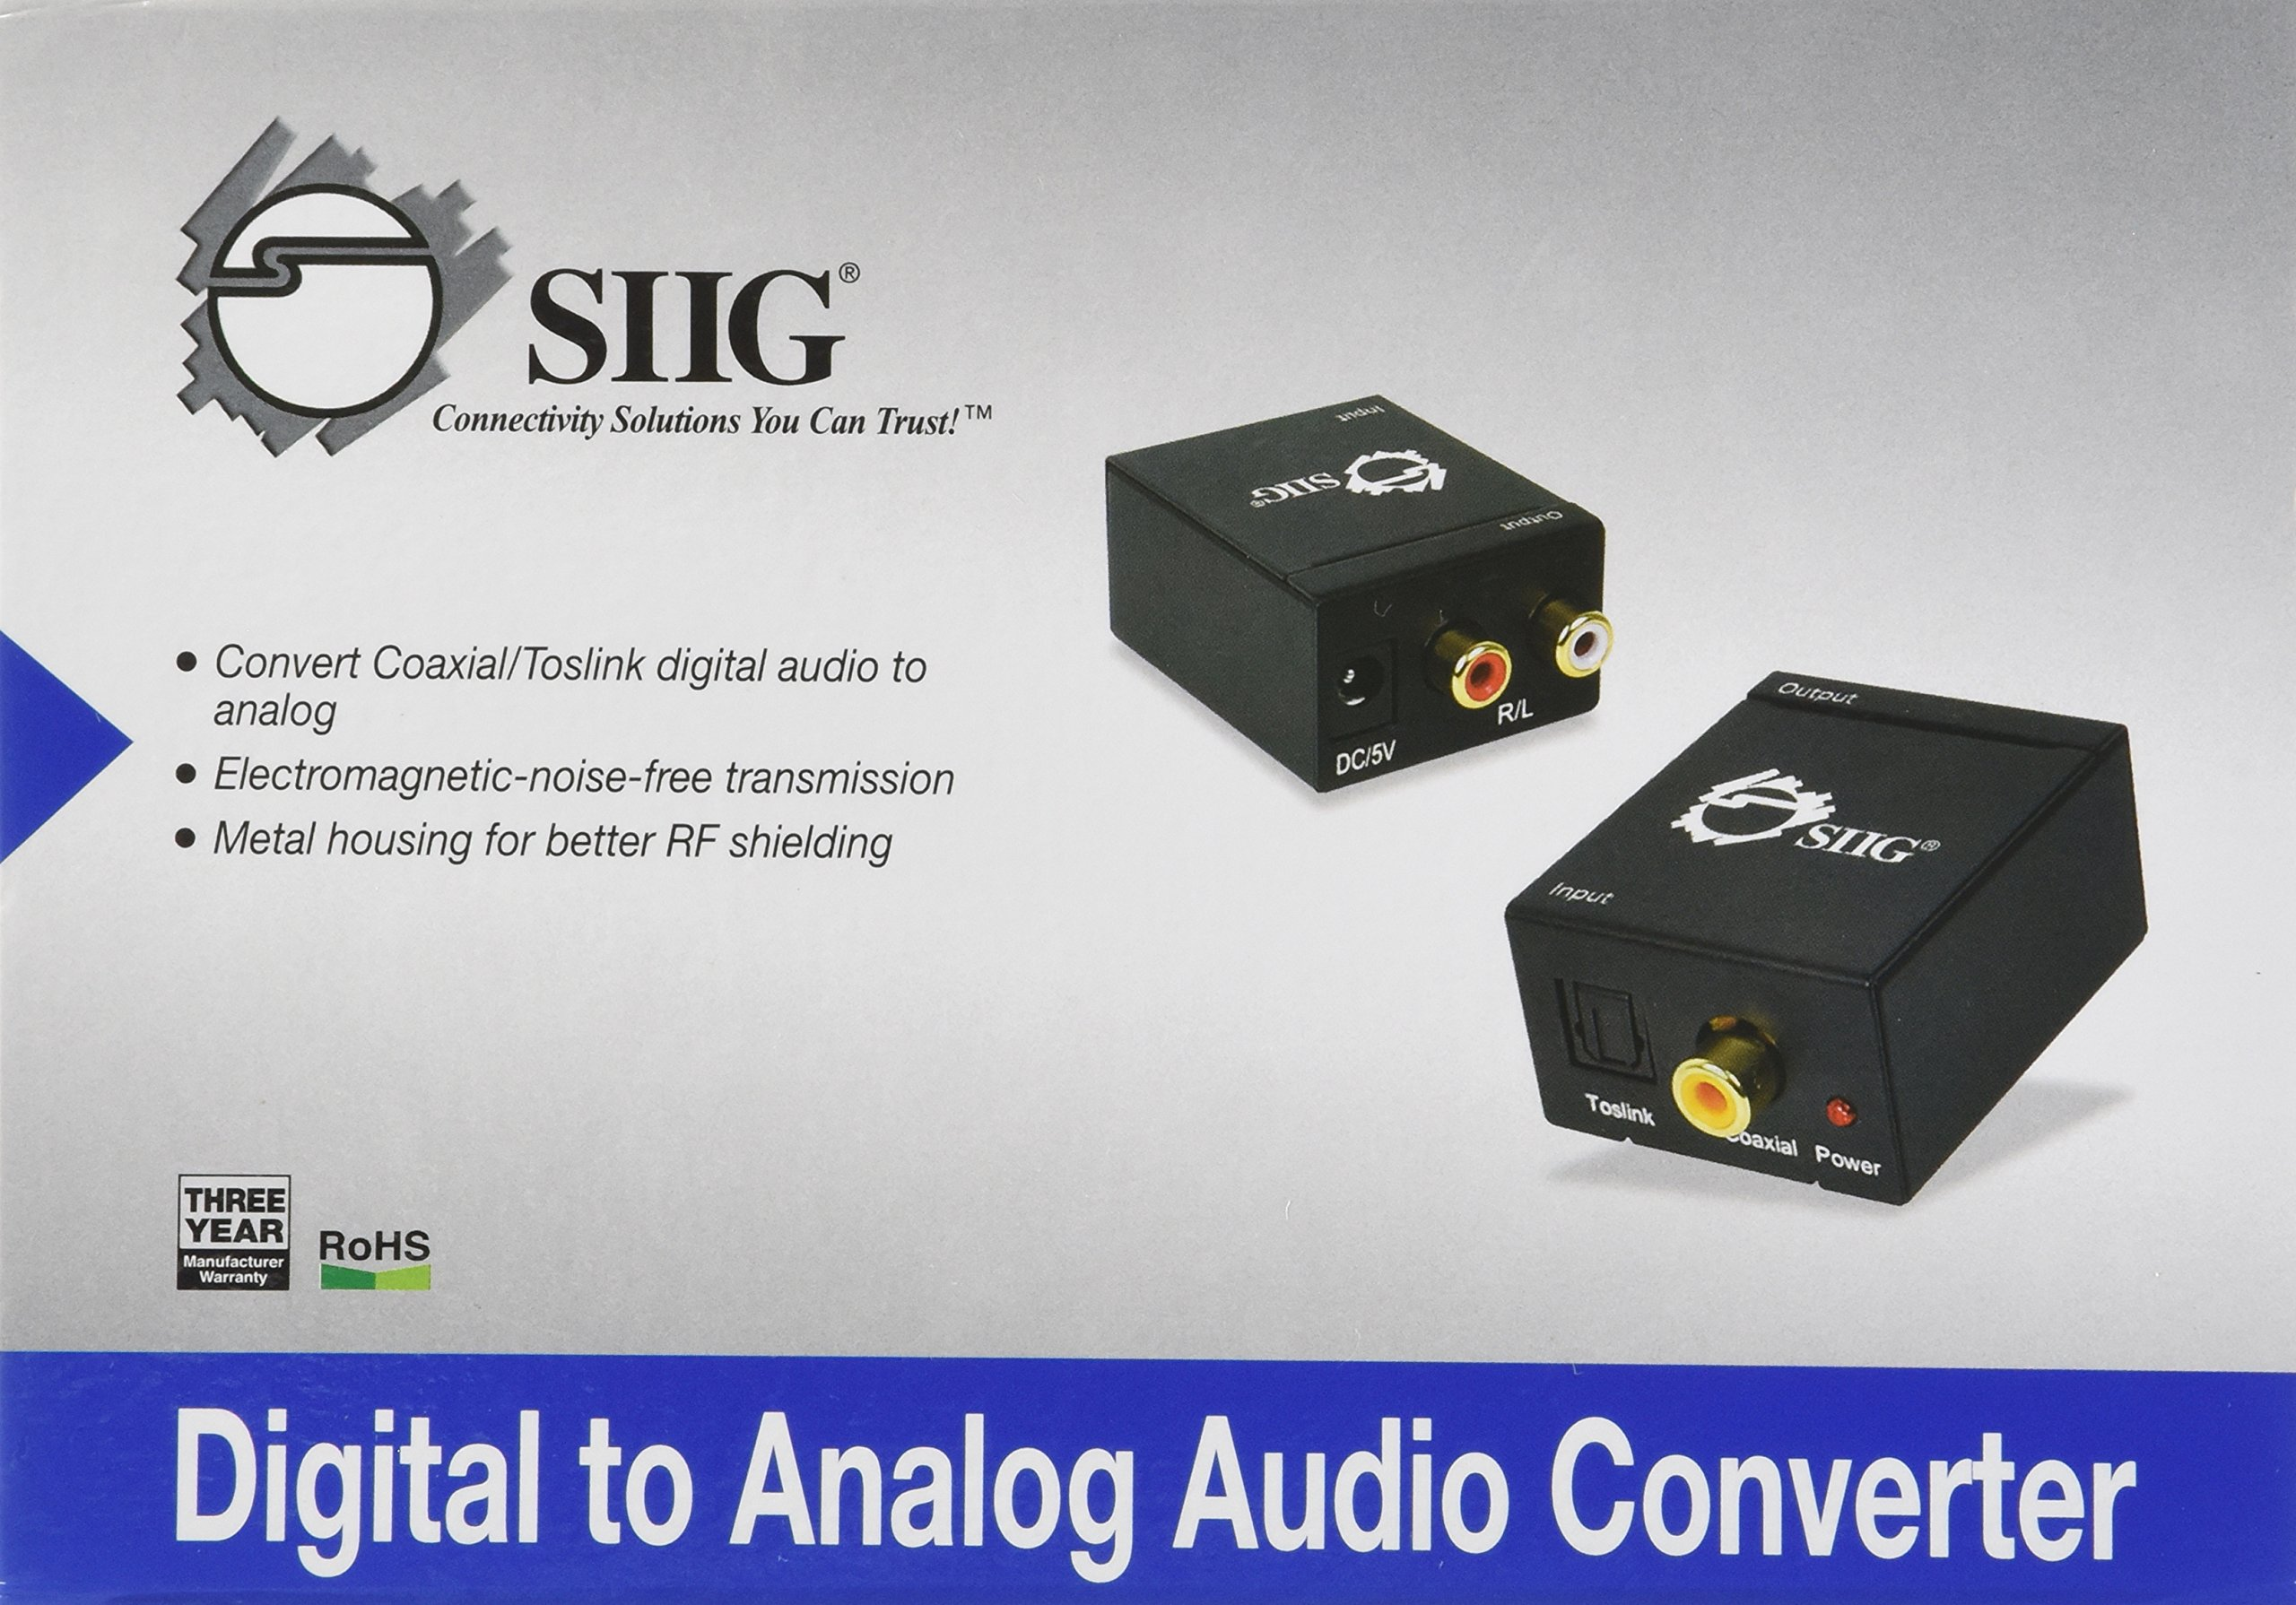 SIIG Digital to Analog Audio Converter (CE-CV0011-S1)